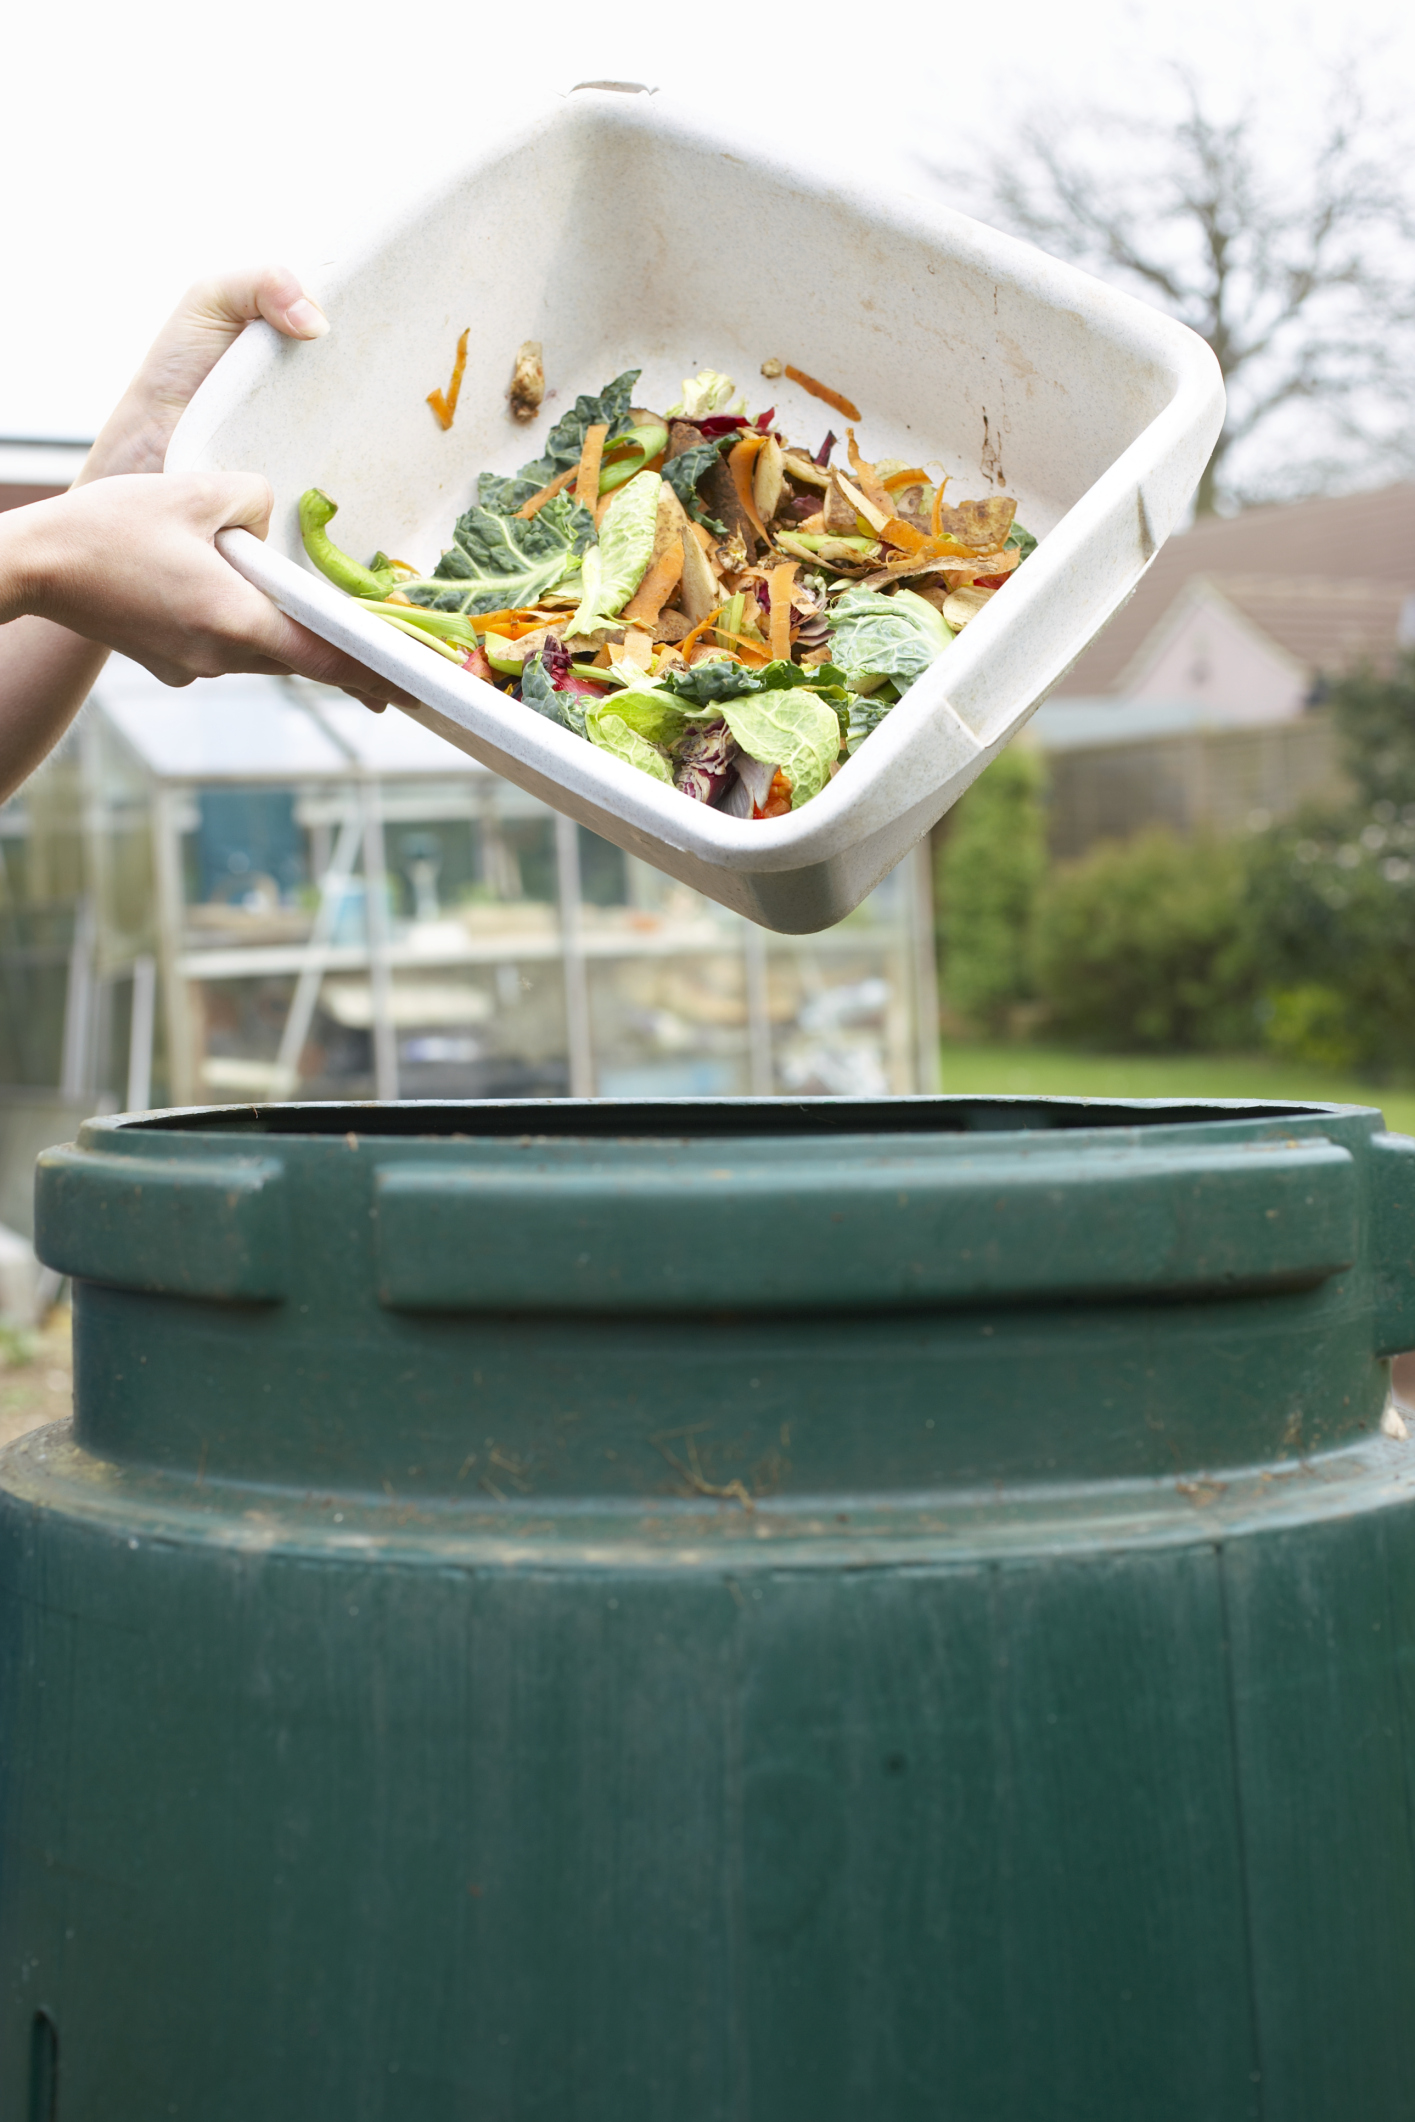 Dudley folk urged to bag a compost bargain